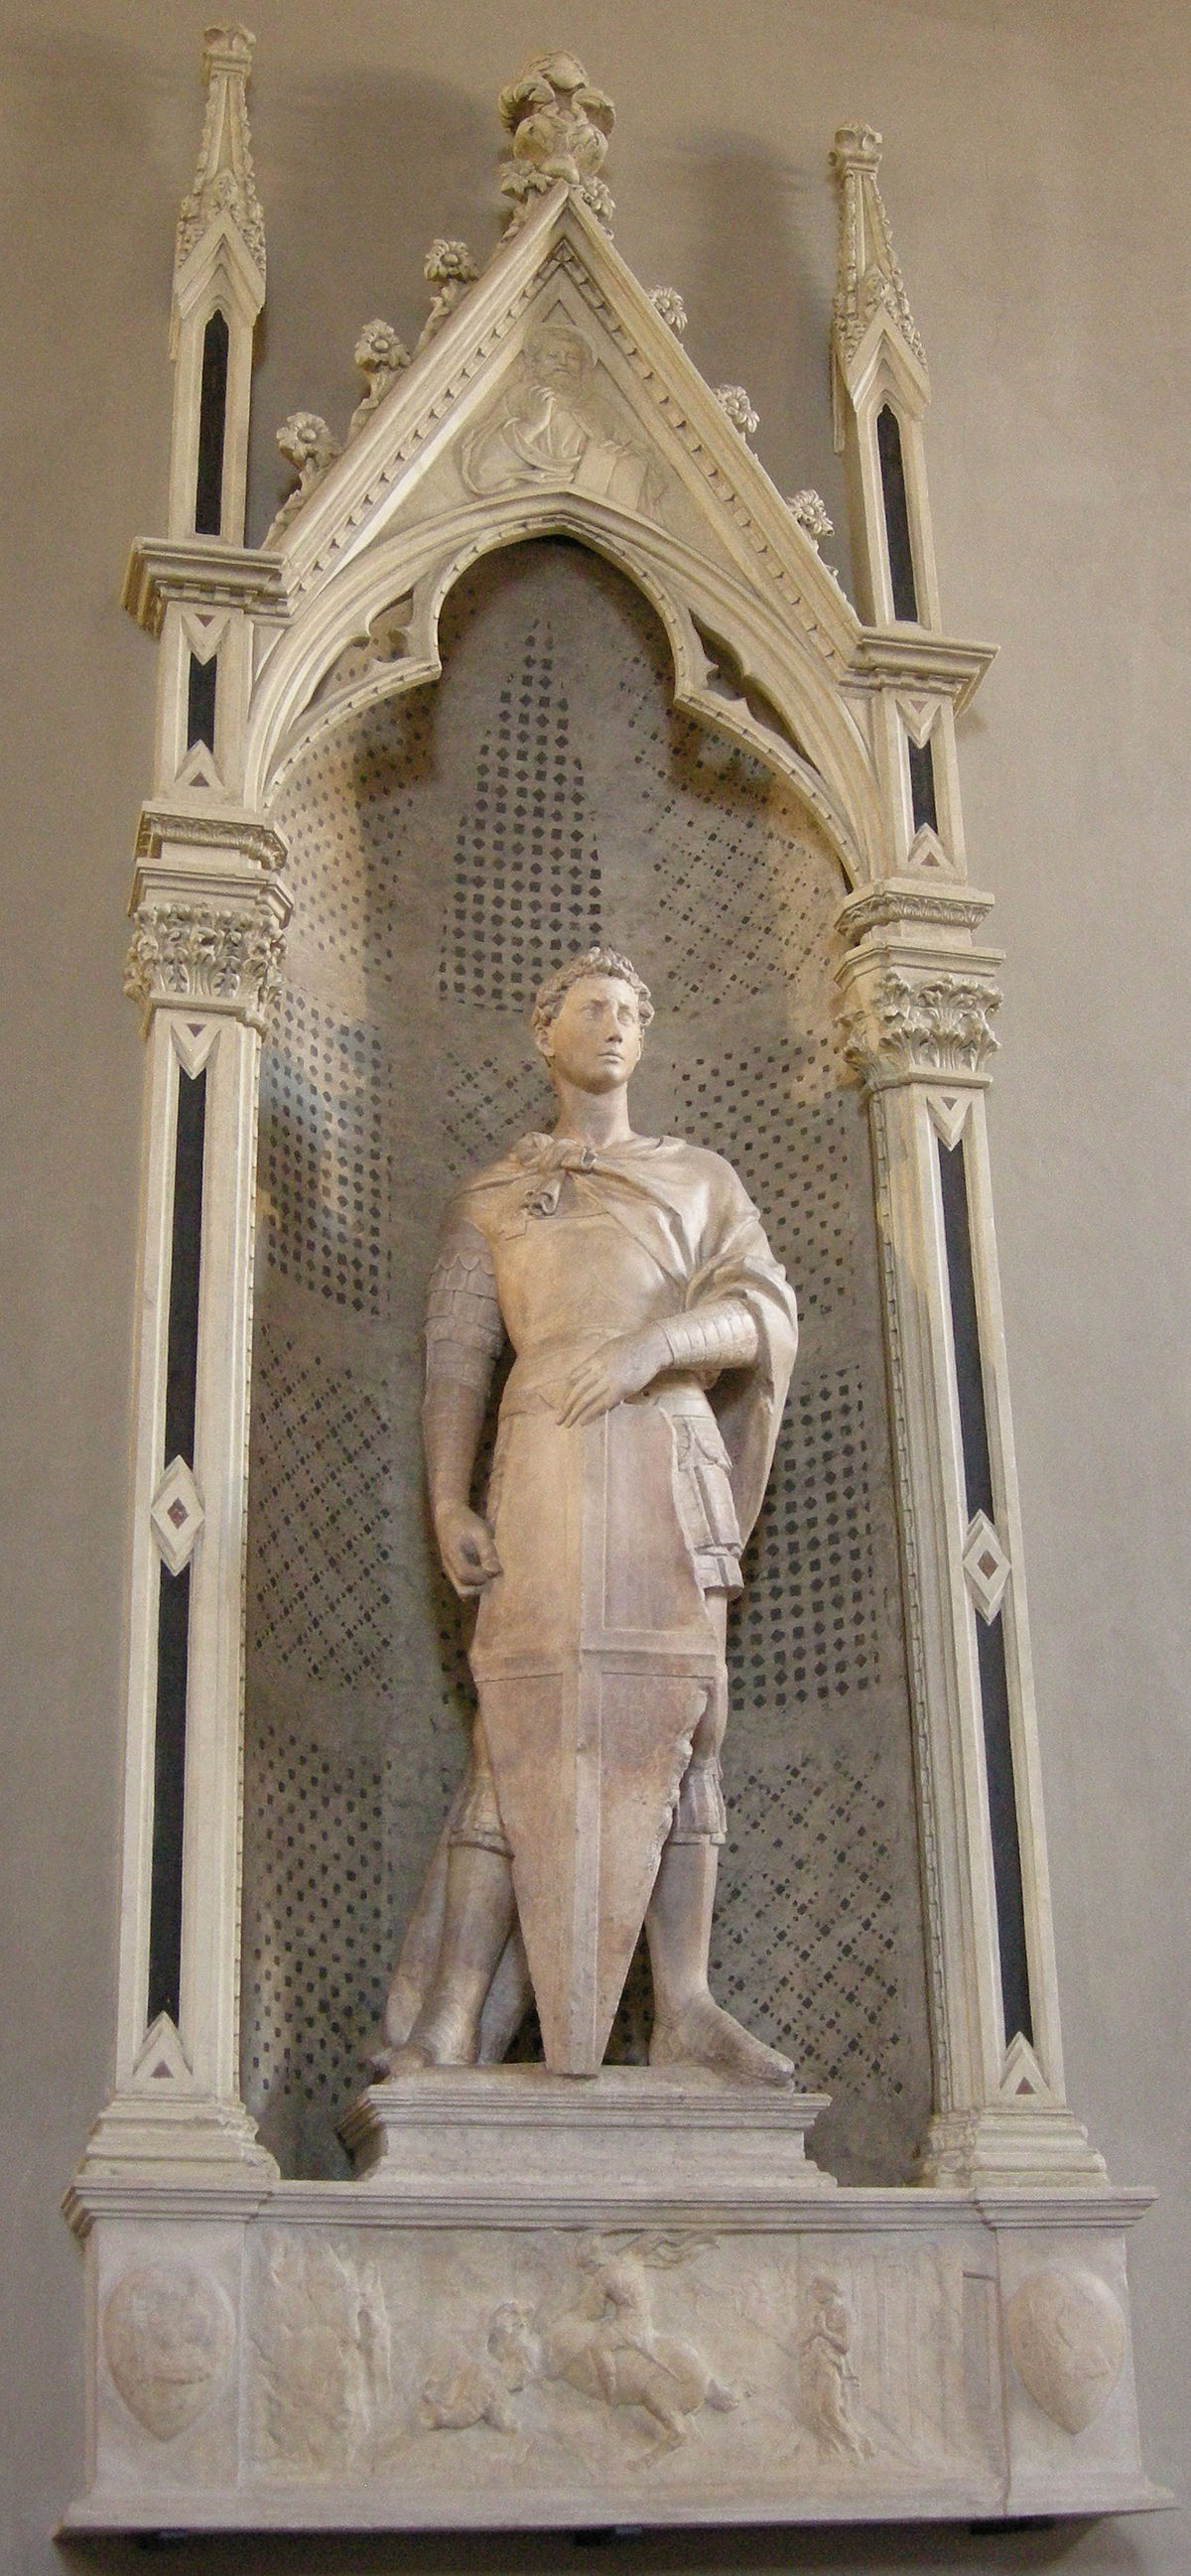 Statue of St George by Donatello